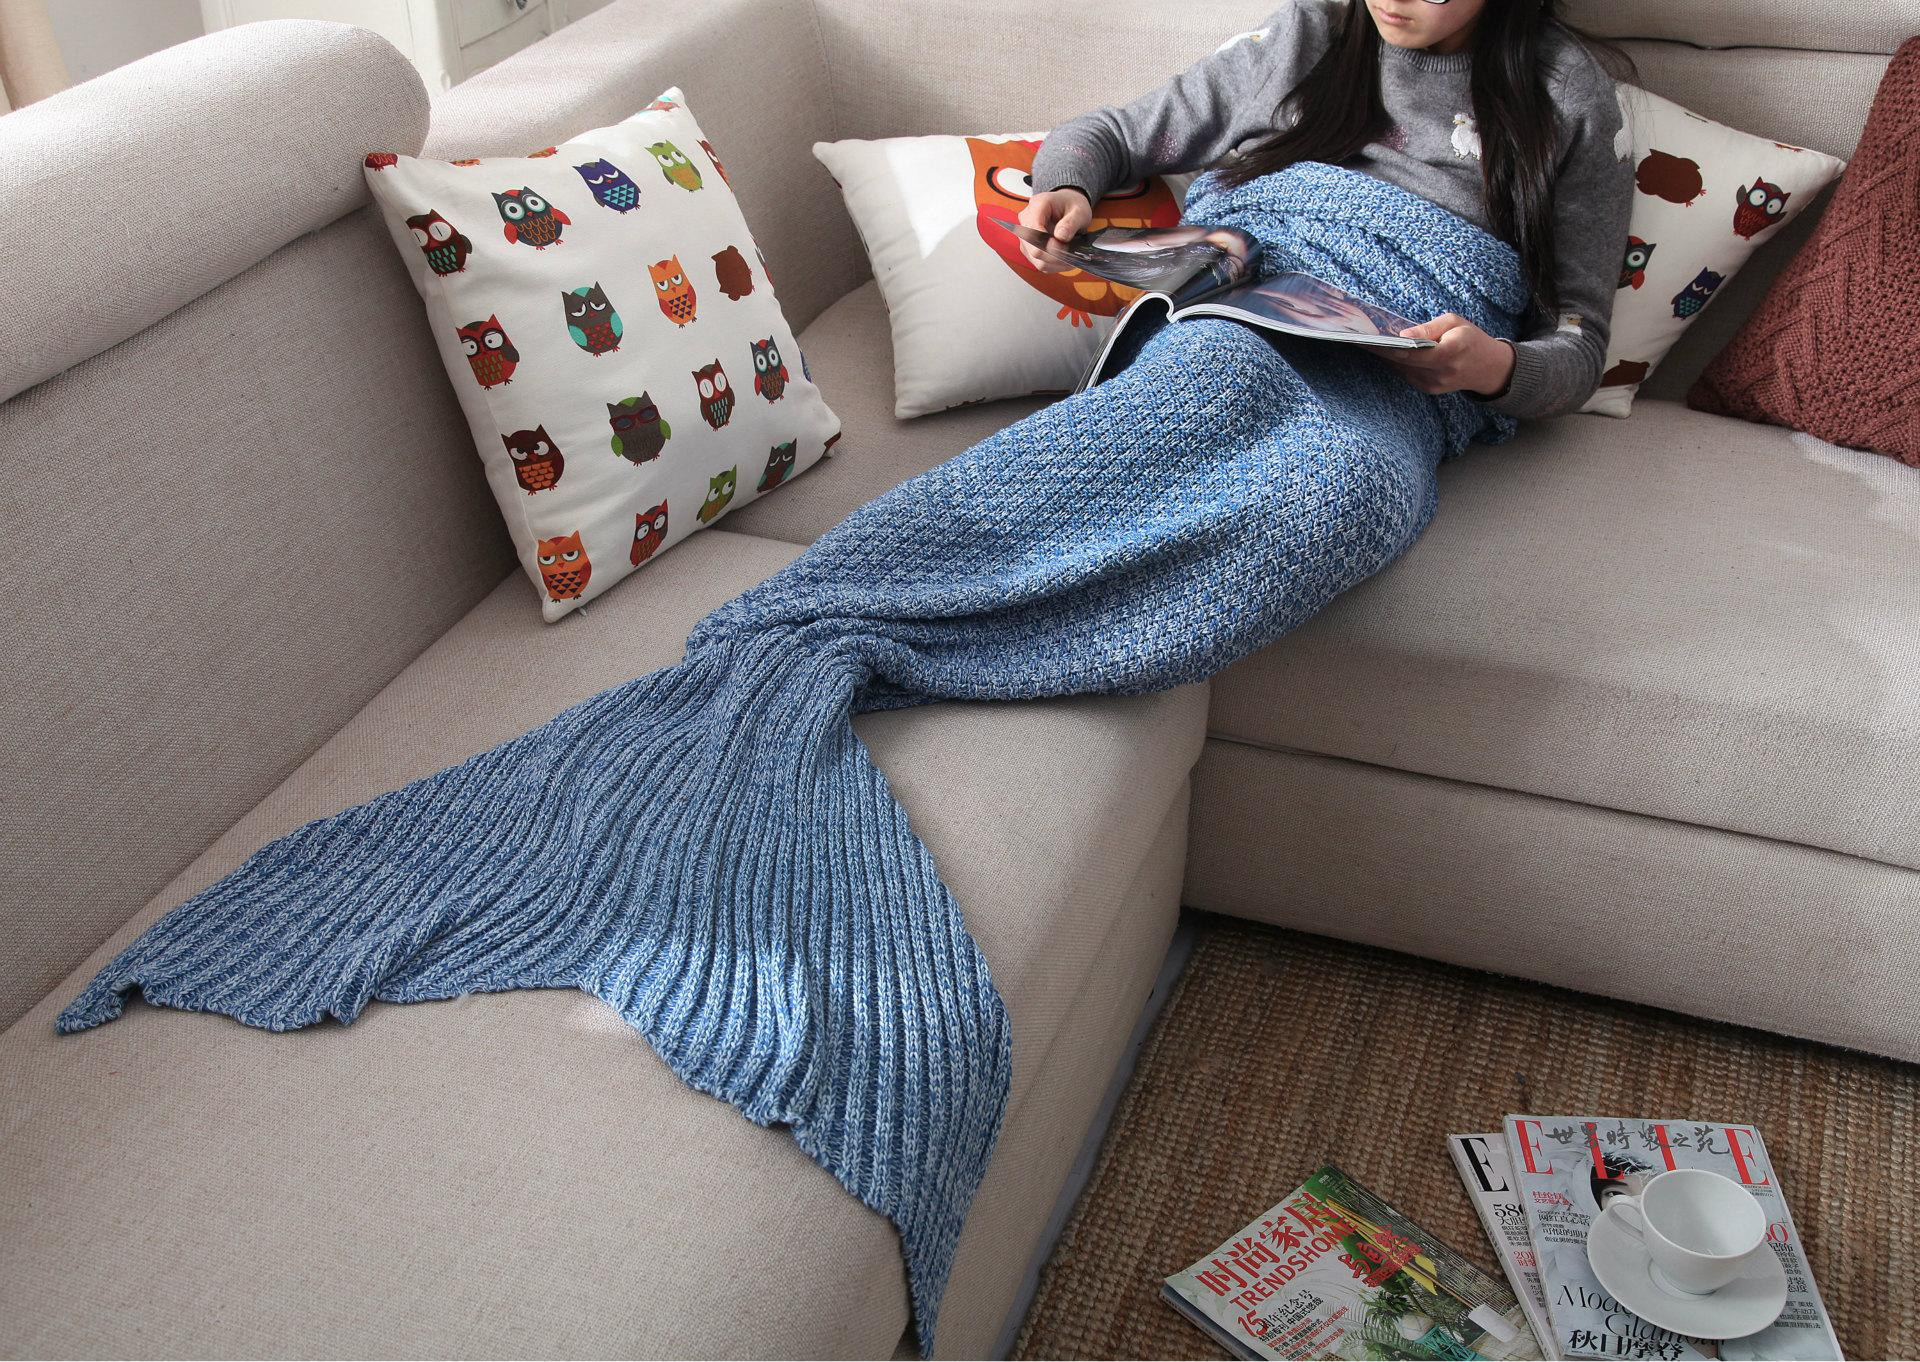 Mermaid Tail Blanket Cosplay Winter Warm Blankets Costume Handmade 80*190cm  60*130cm With 4 Colors 10pcs Free Shipping